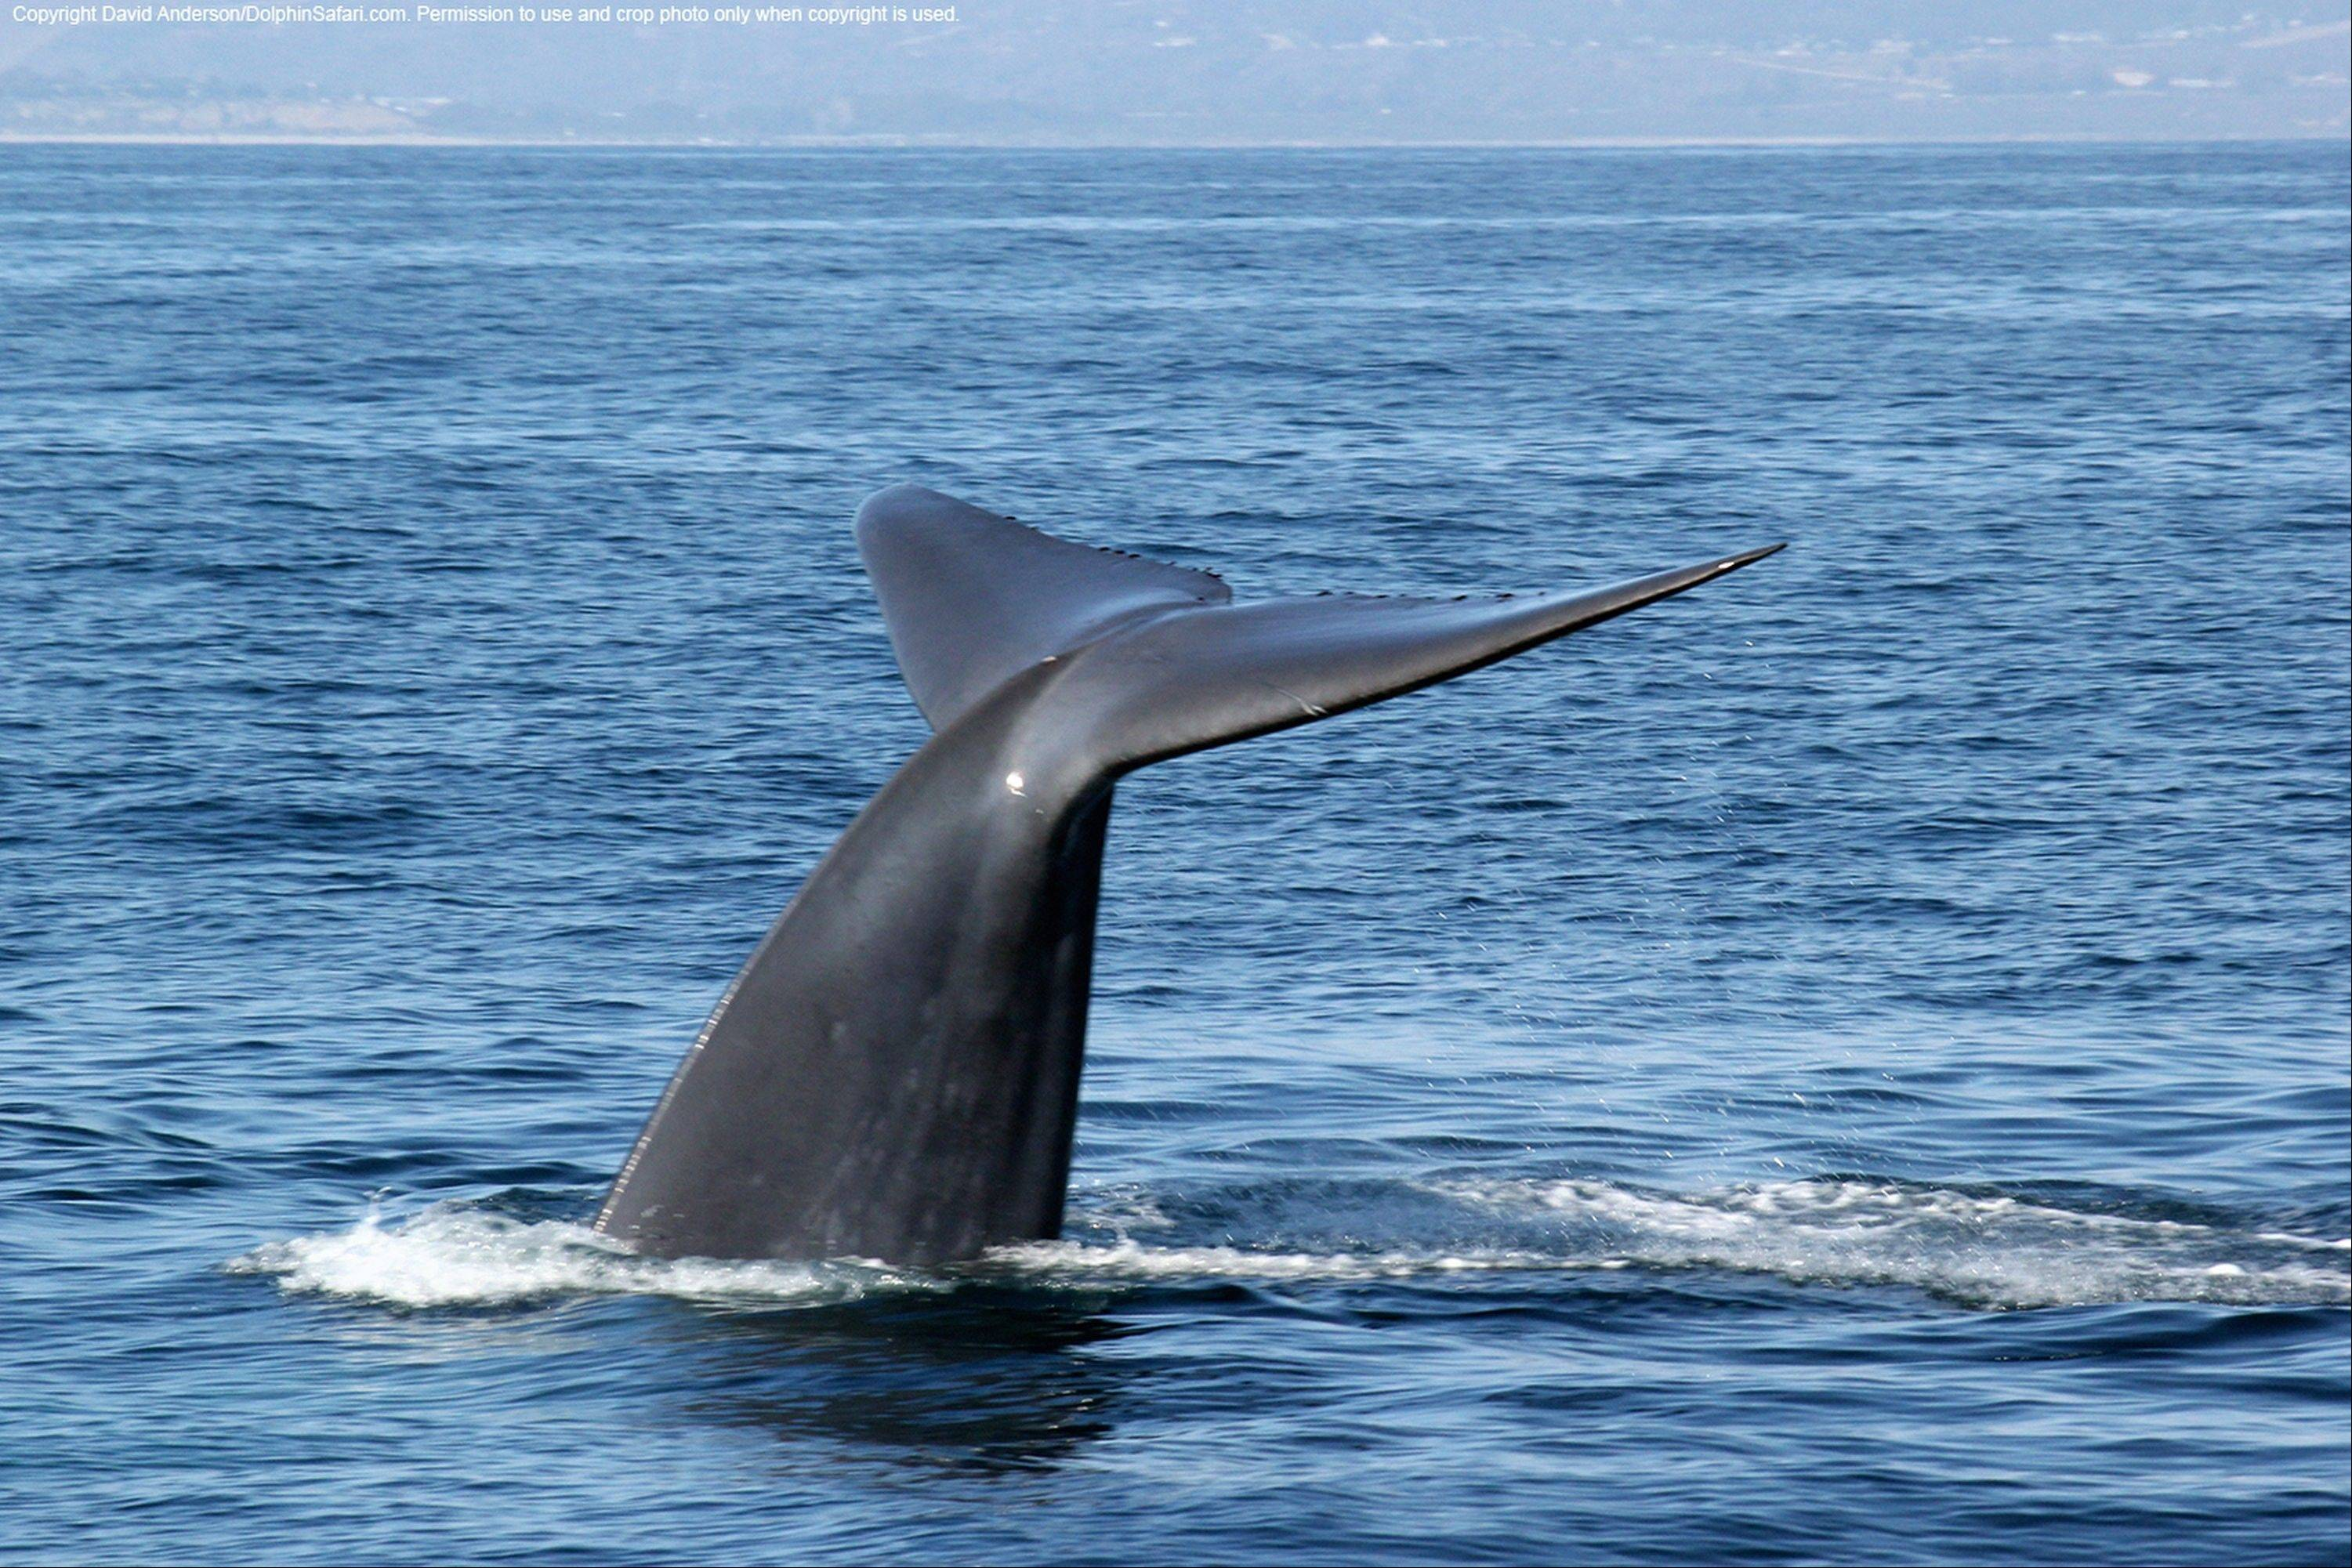 Endangered blue whales, the world's largest animals, are being seen in droves off the northern California coast, lured by an abundance of their favorite food — shrimplike creatures known as krill. Whale-watching tour operators are reporting a bumper harvest of blue whales, orcas, humpbacks and binocular-toting tourists eager to witness the coastal feeding frenzy.